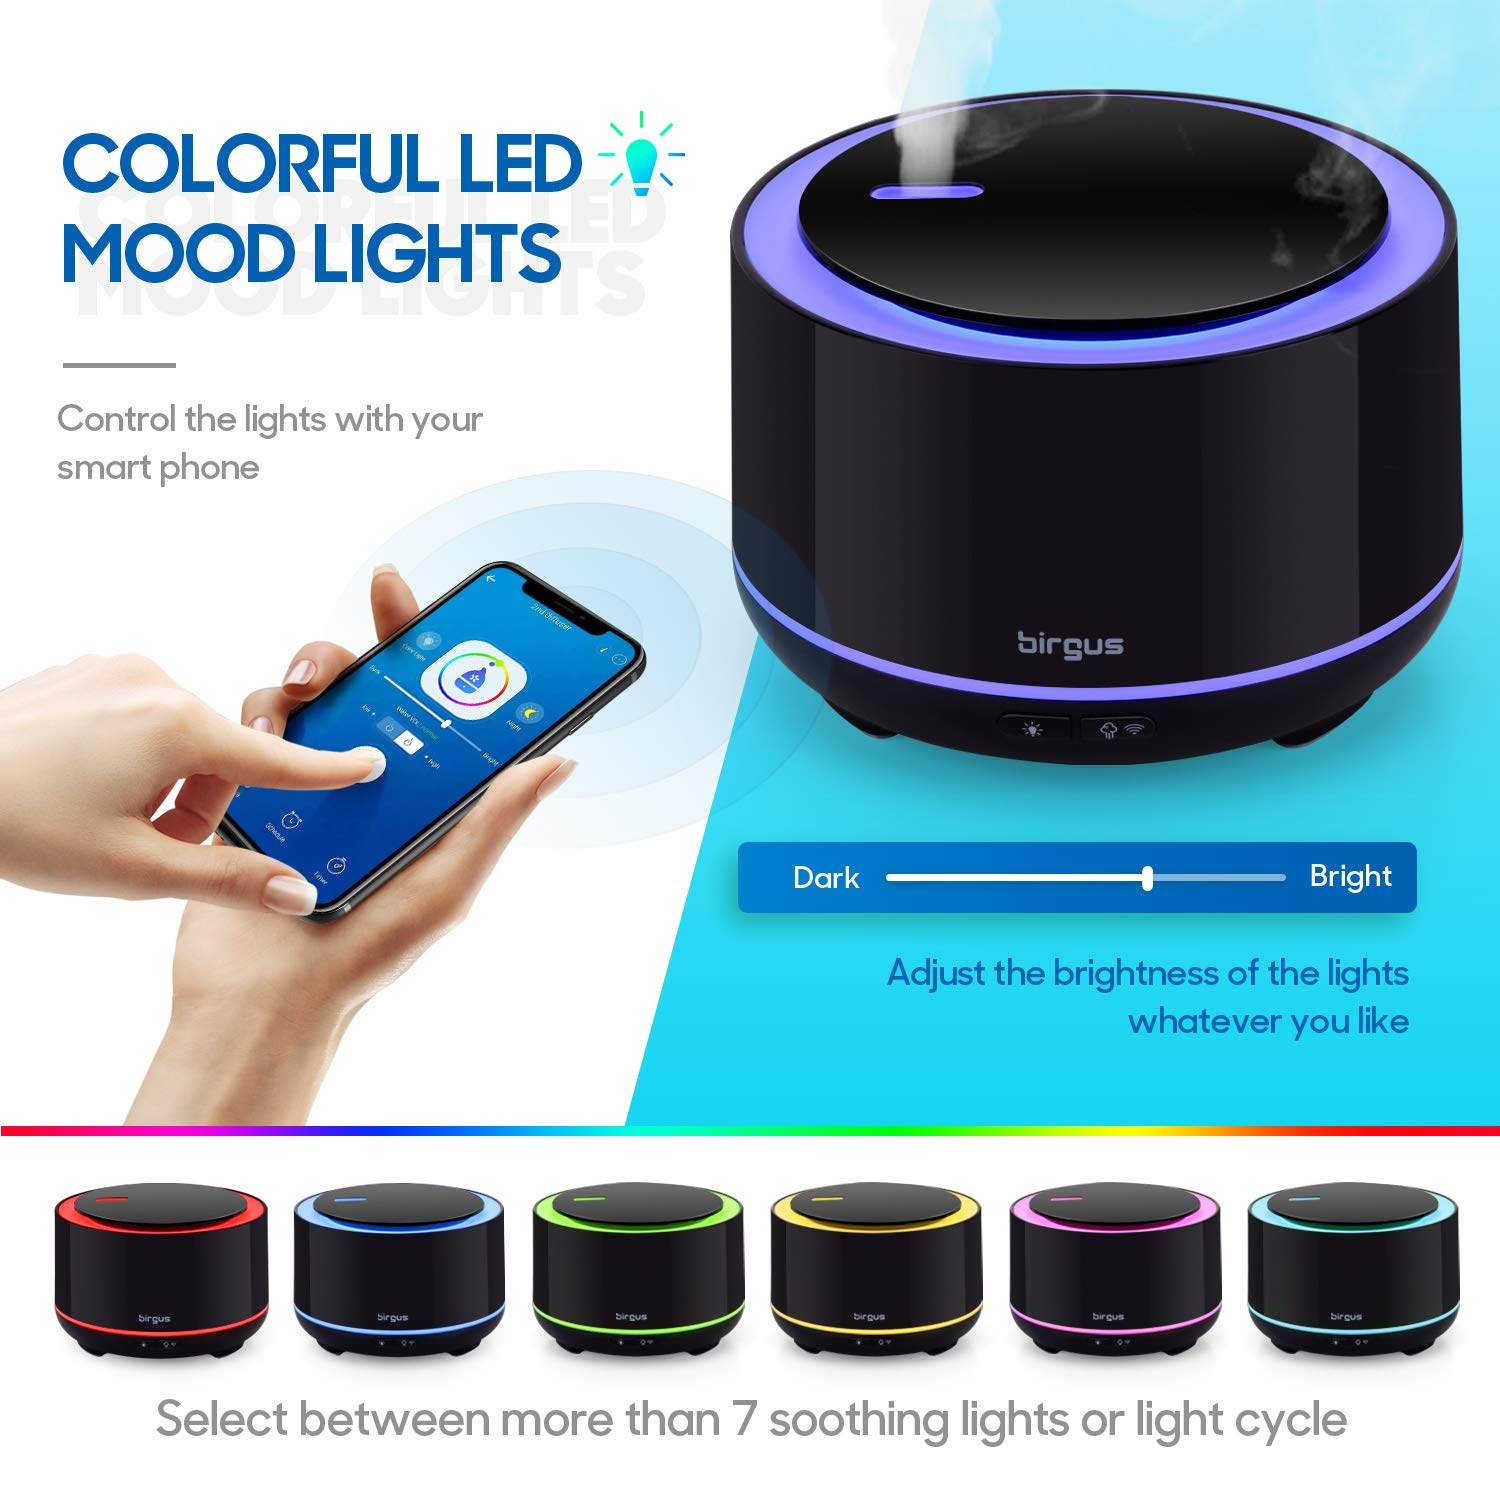 Free Amazon Promo Code 2020 for Smart Wifi Enabled Essential Oil Diffuser